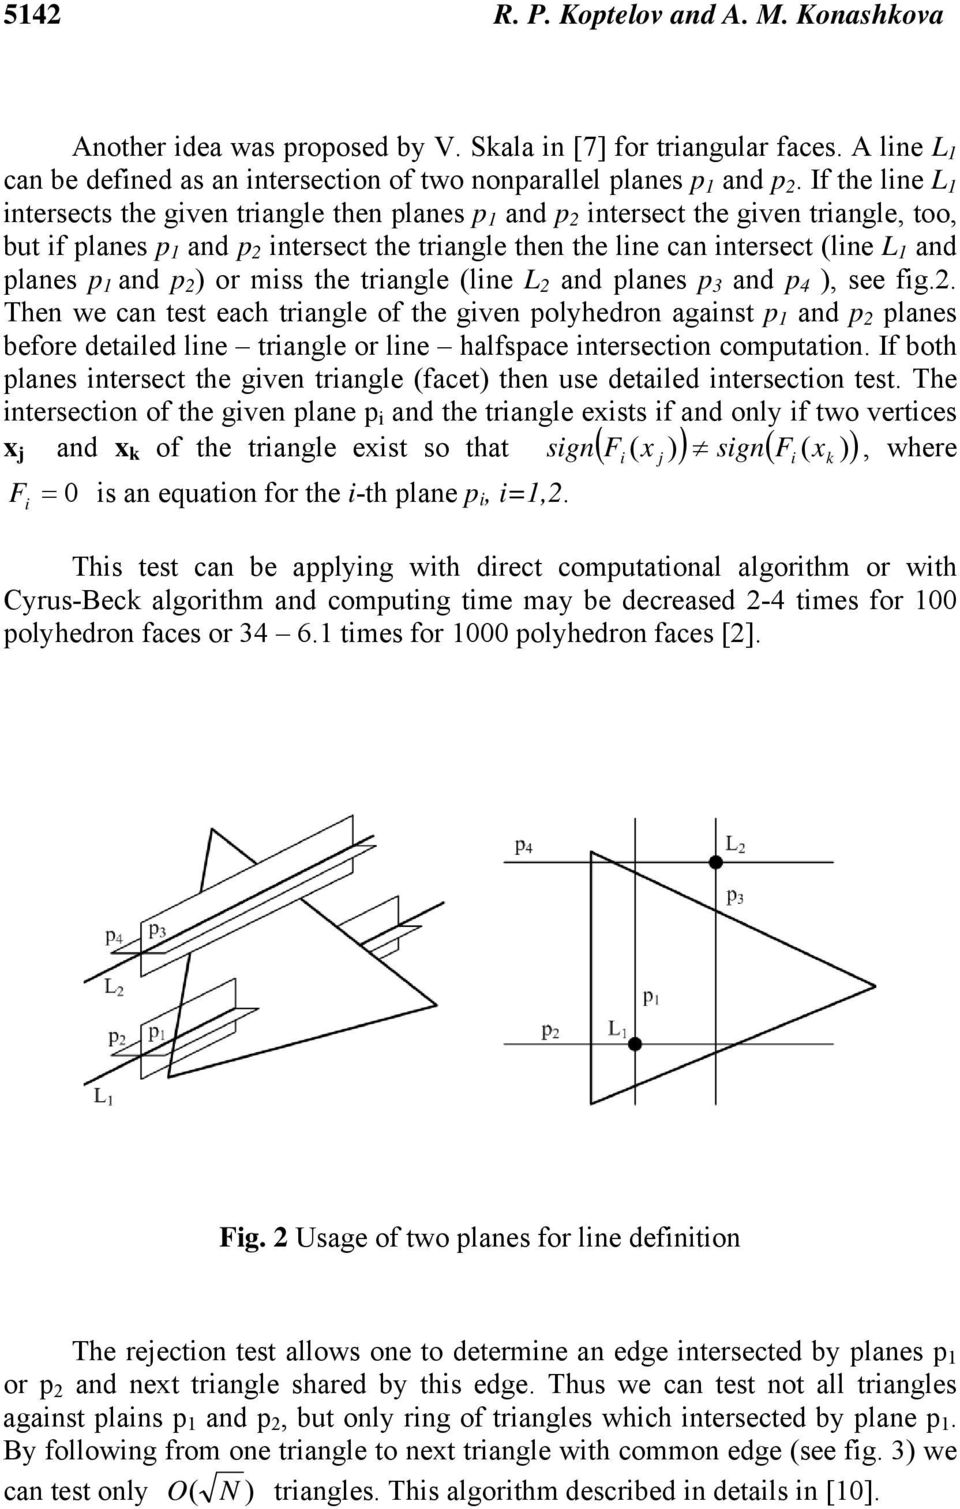 planes p 1 and p 2 ) or miss the triangle (line L 2 and planes p 3 and p 4 ), see fig.2. Then we can test each triangle of the given polyhedron against p 1 and p 2 planes before detailed line triangle or line halfspace intersection computation.